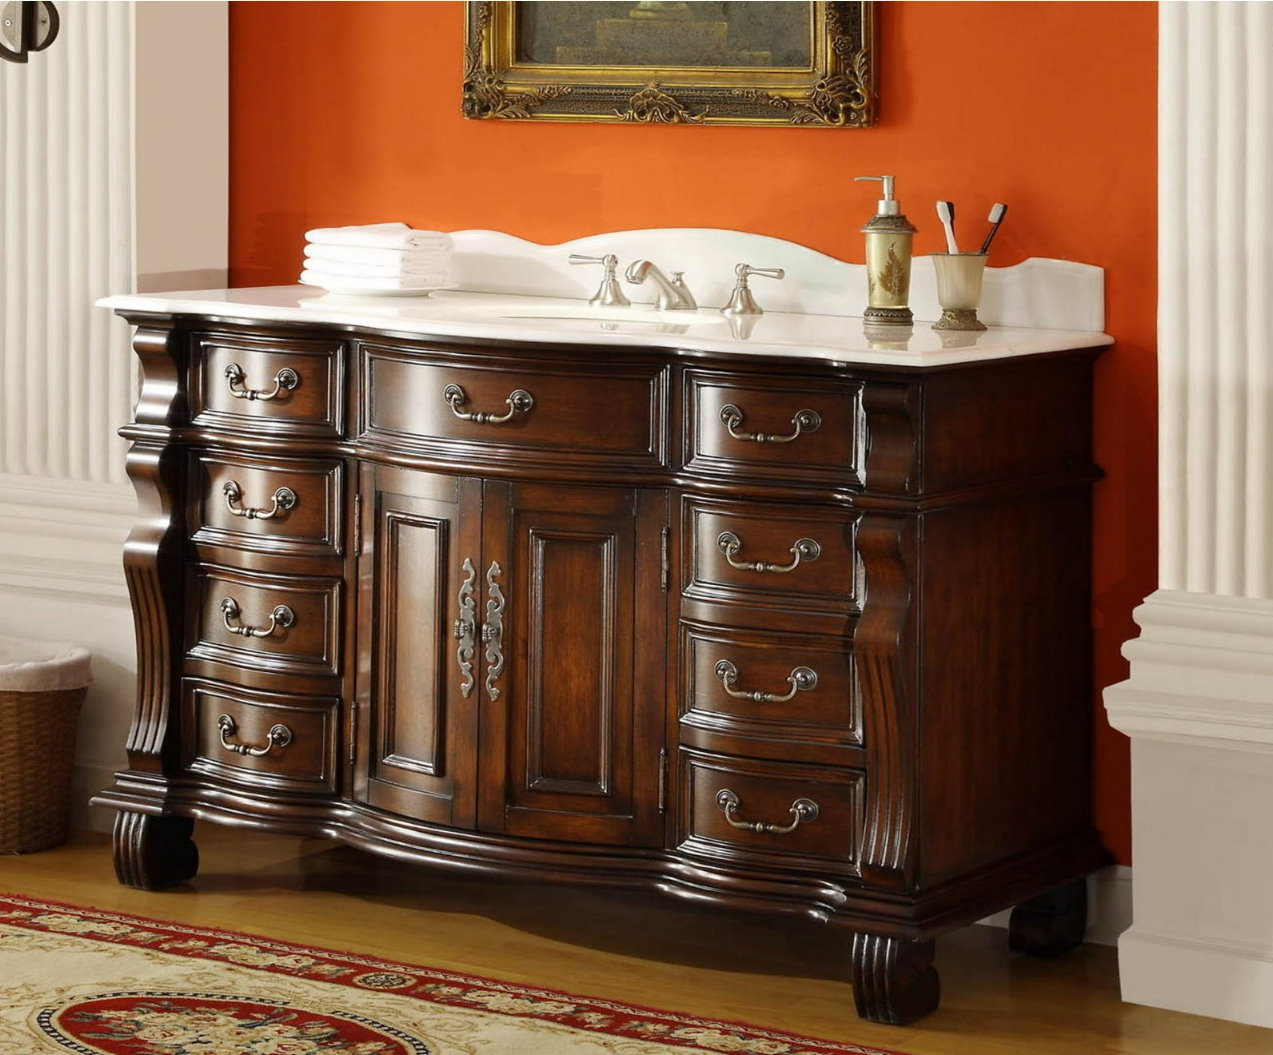 60 Inch Single Sink Bathroom Vanity 8 Drawers Medium Brown Color 60 Wx22 Dx36 H Cgd4437w60